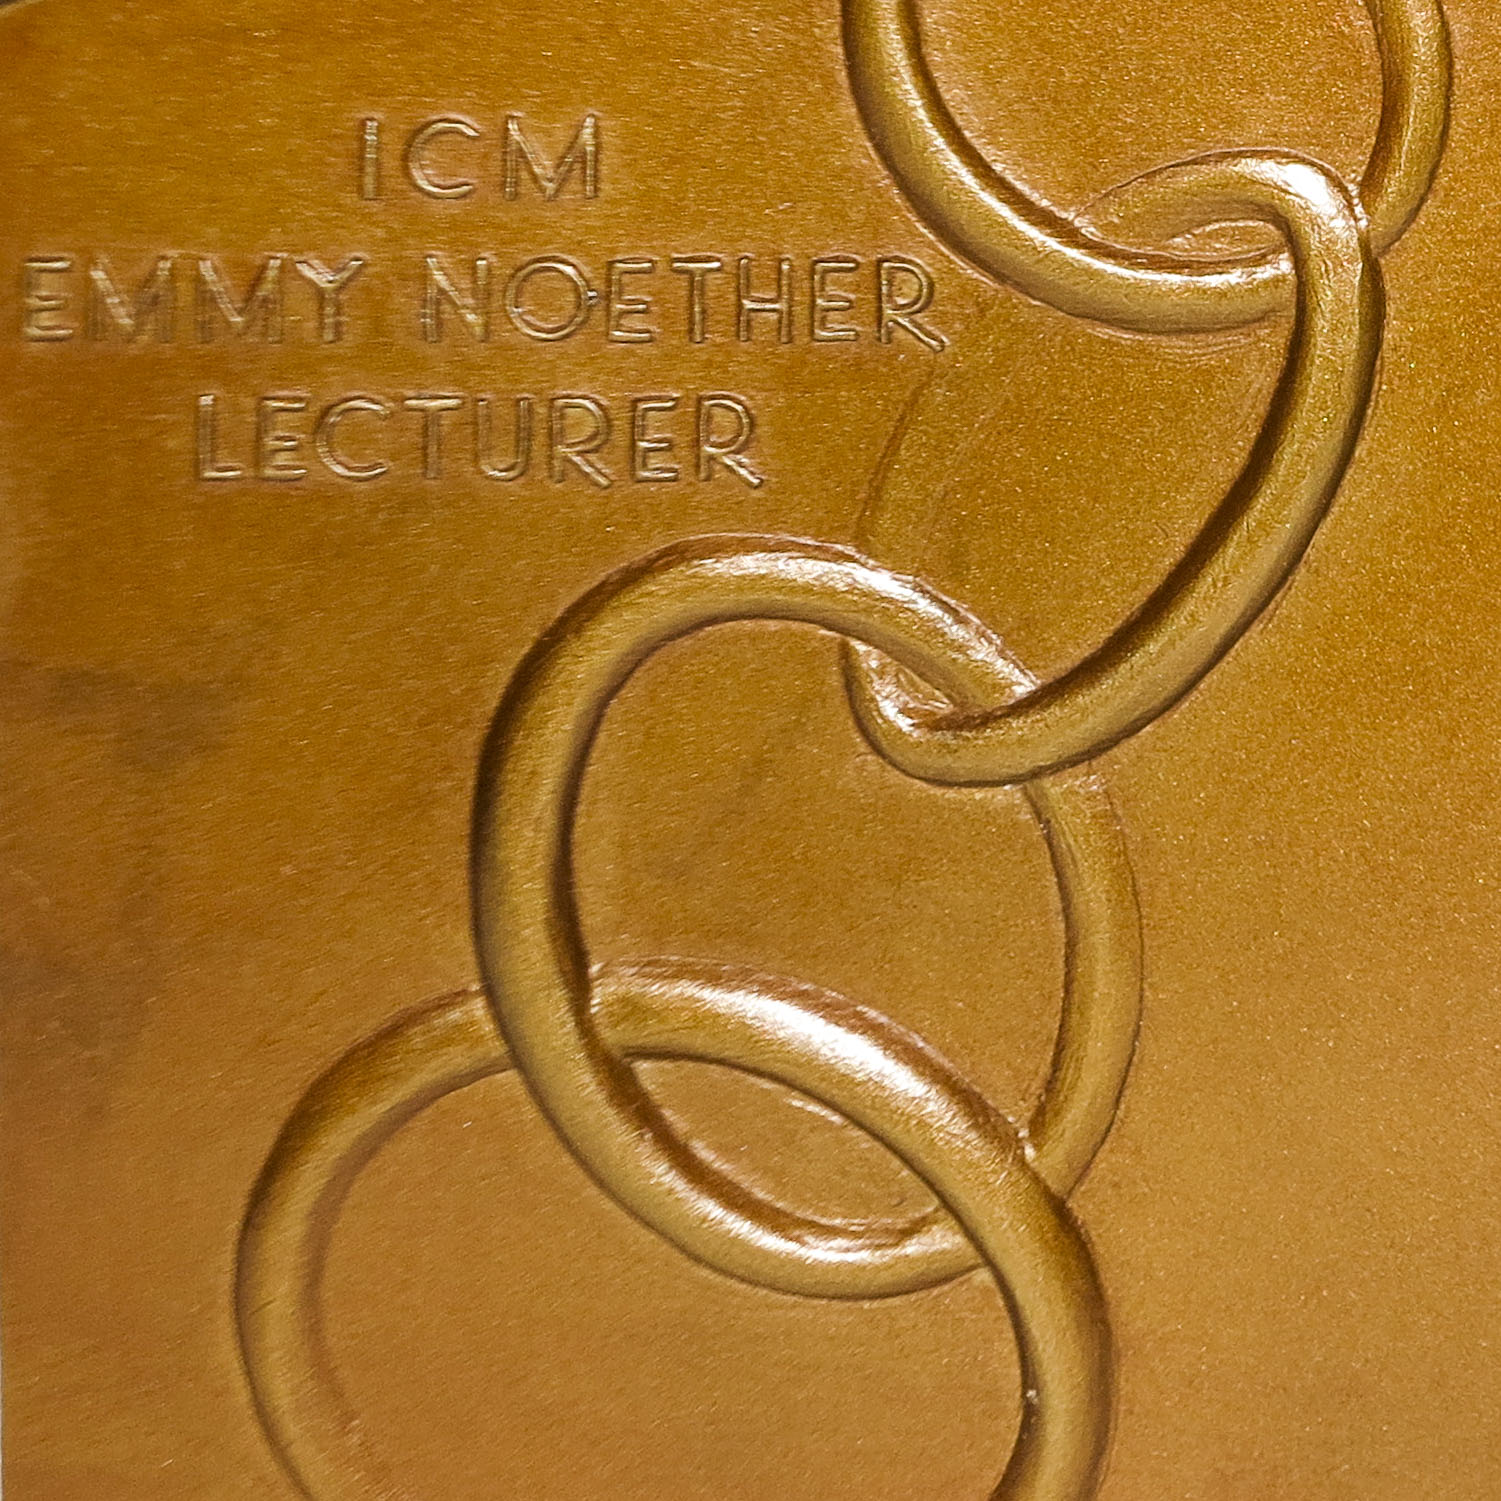 Emmy Noether Plaquette back, sculpted by Stephanie Magdziak